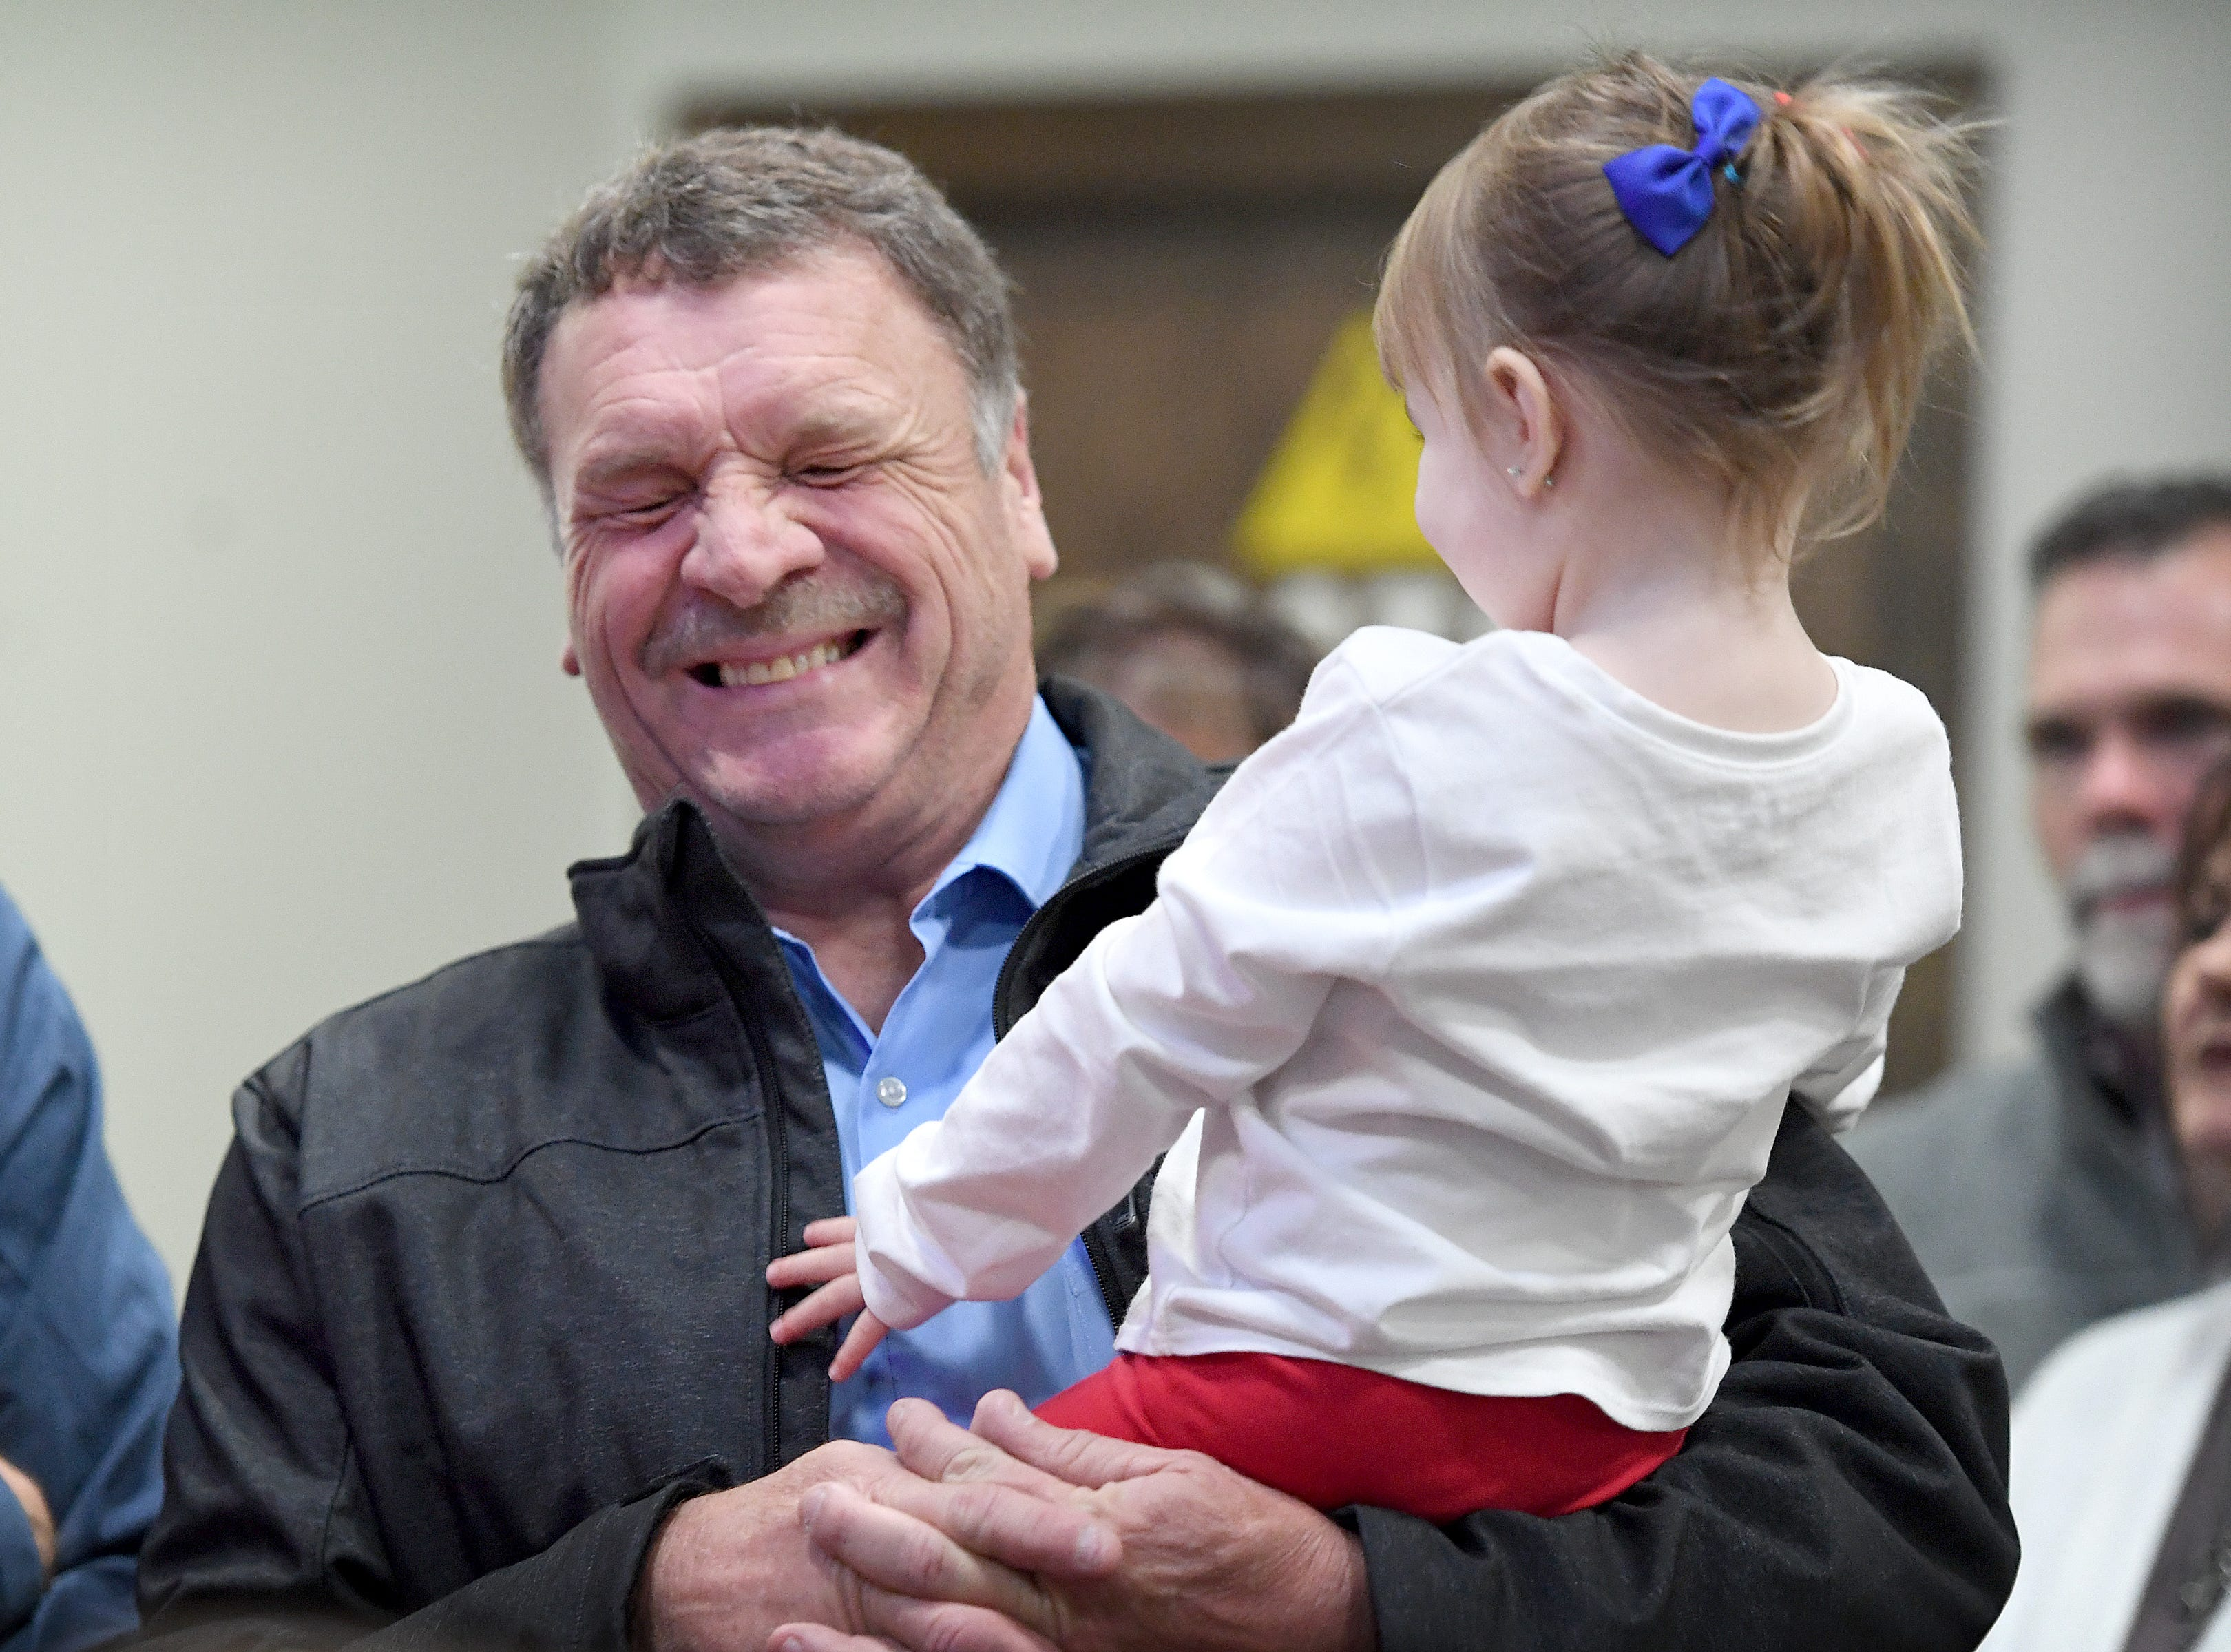 Robert Pressley, Republican Incumbent for County Commission in District 3, plays with his granddaughter, Elleni, 2, as election results roll in during an election results watch party for the Buncombe County Republicans at Twisted Laurel on Nov. 6, 2018.